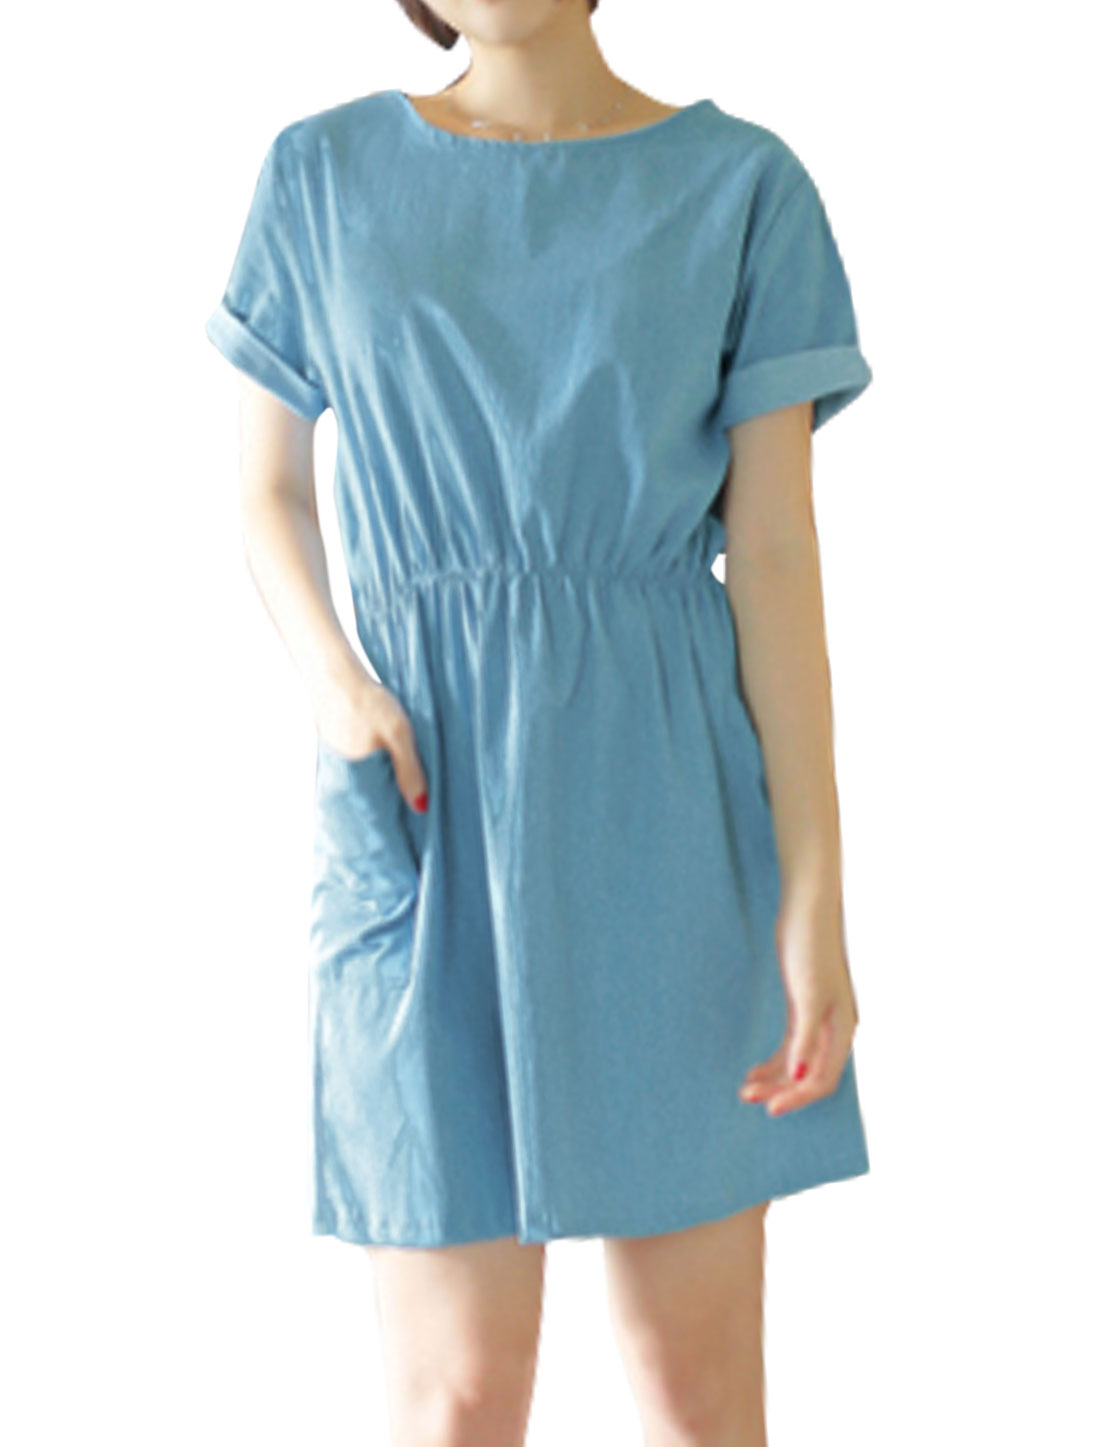 Women Short Sleeves Elastic Waist Funnel Pockets A Line Dress Blue S